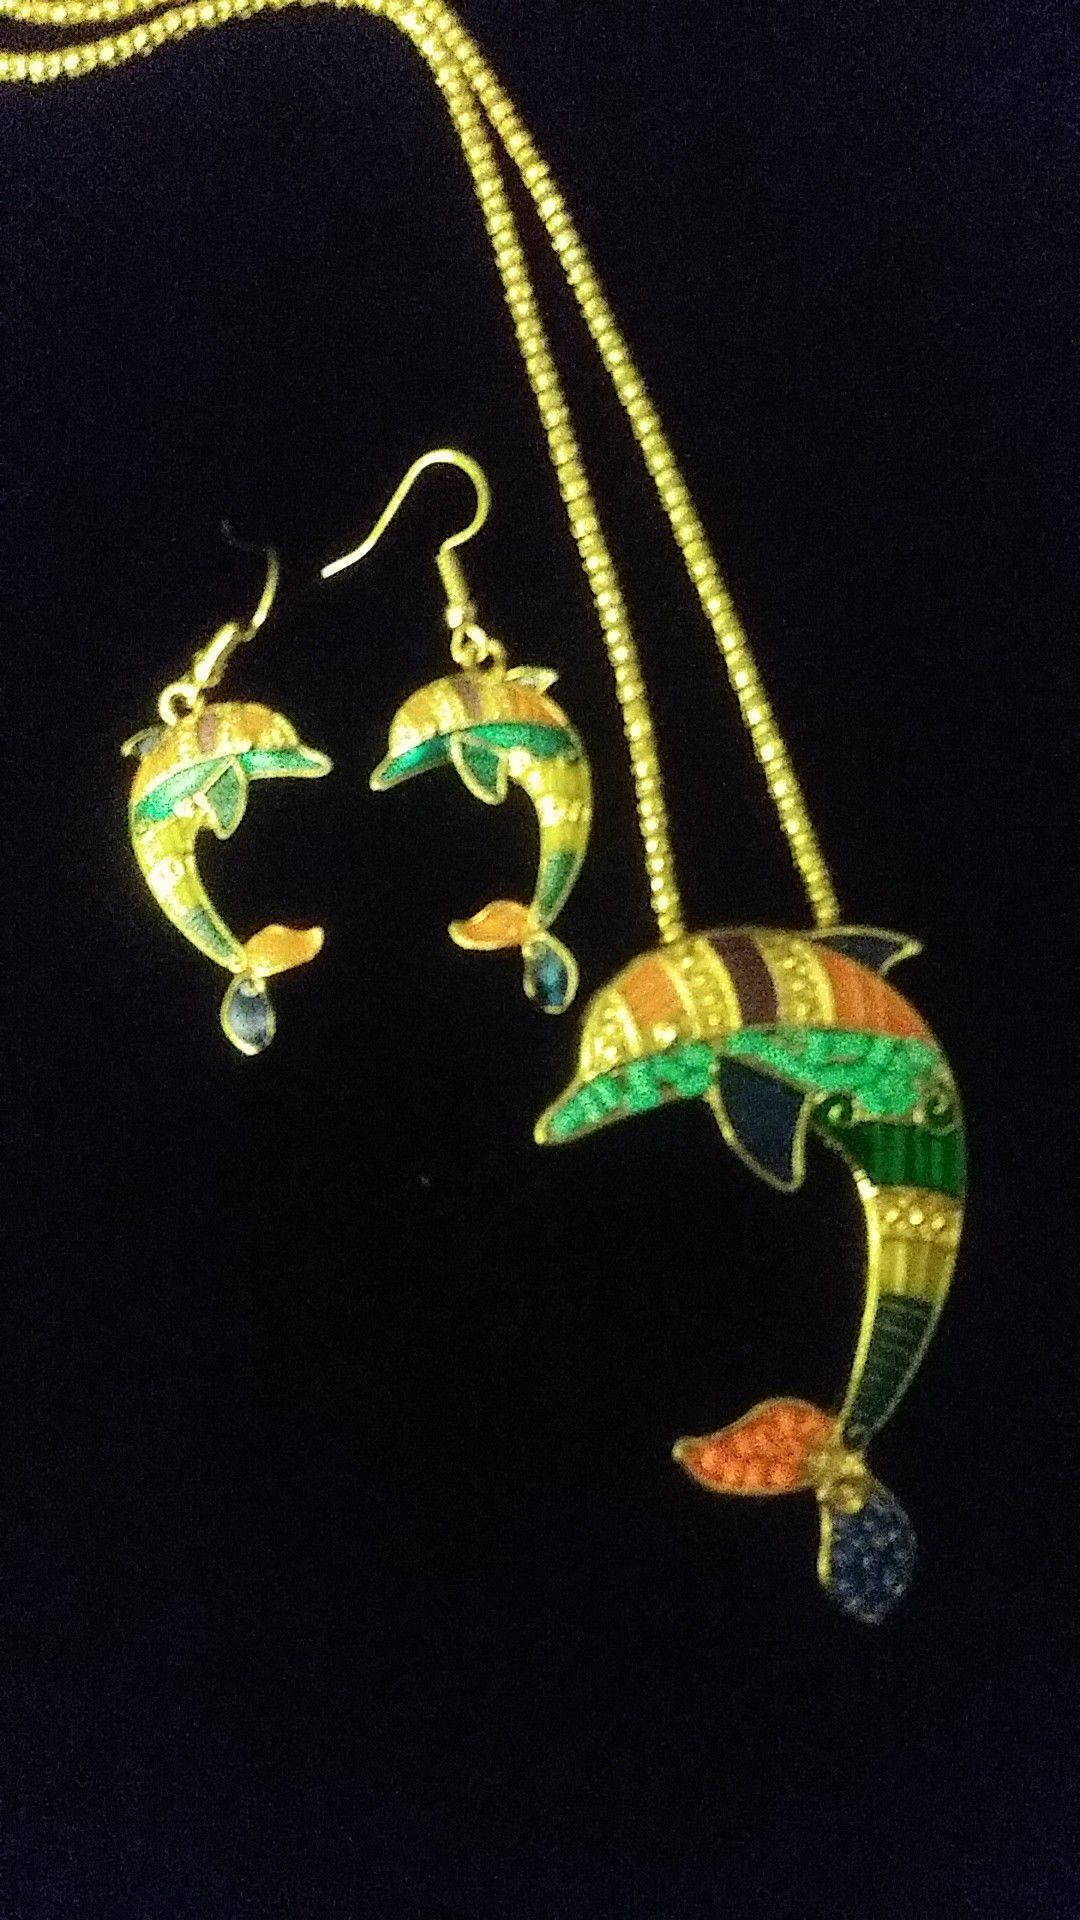 Necklace earings set dolphins, 24$